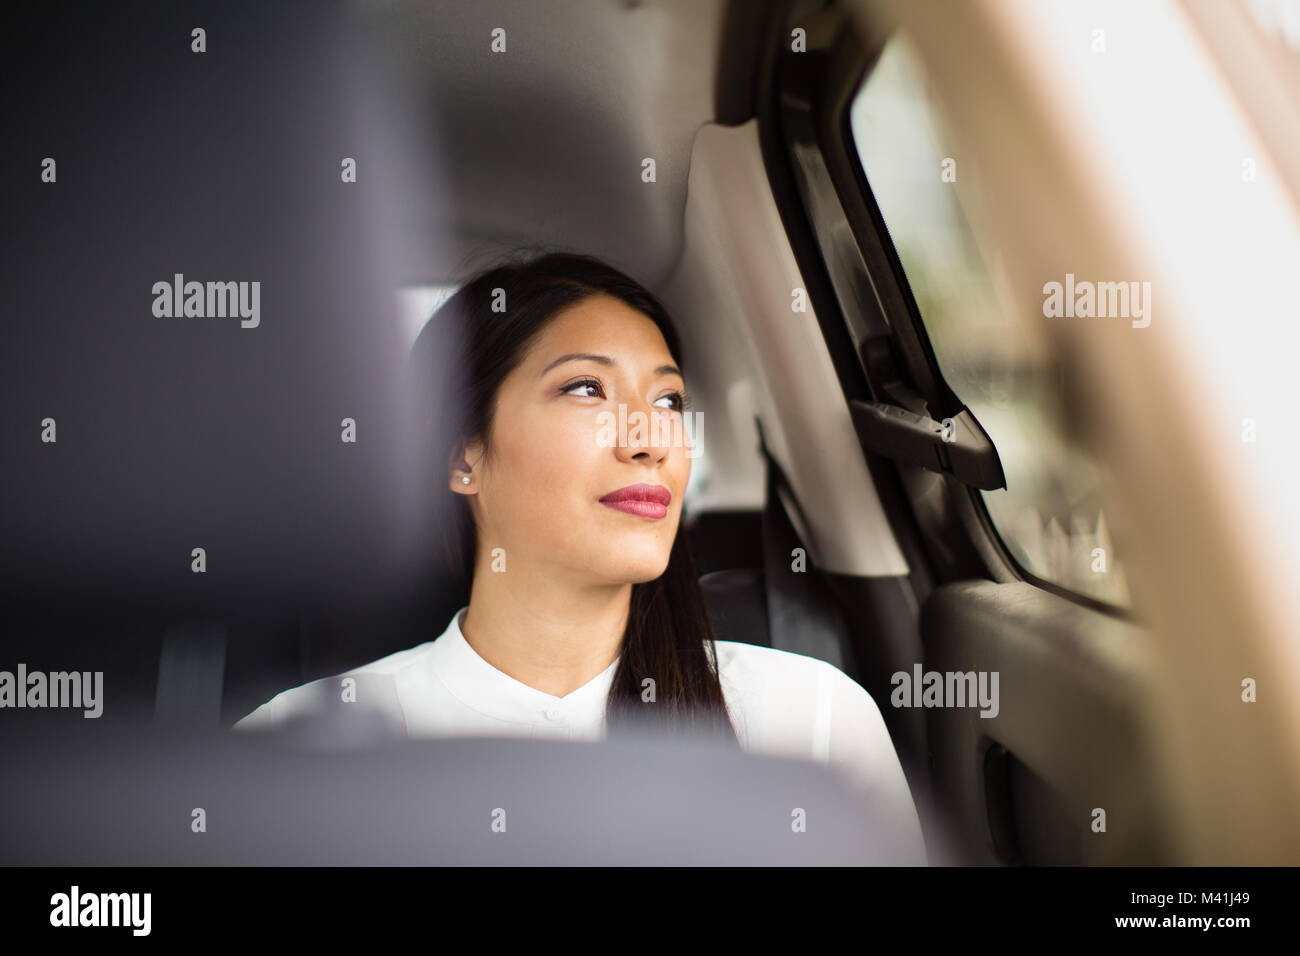 Businesswoman looking out of window of taxi cab - Stock Image